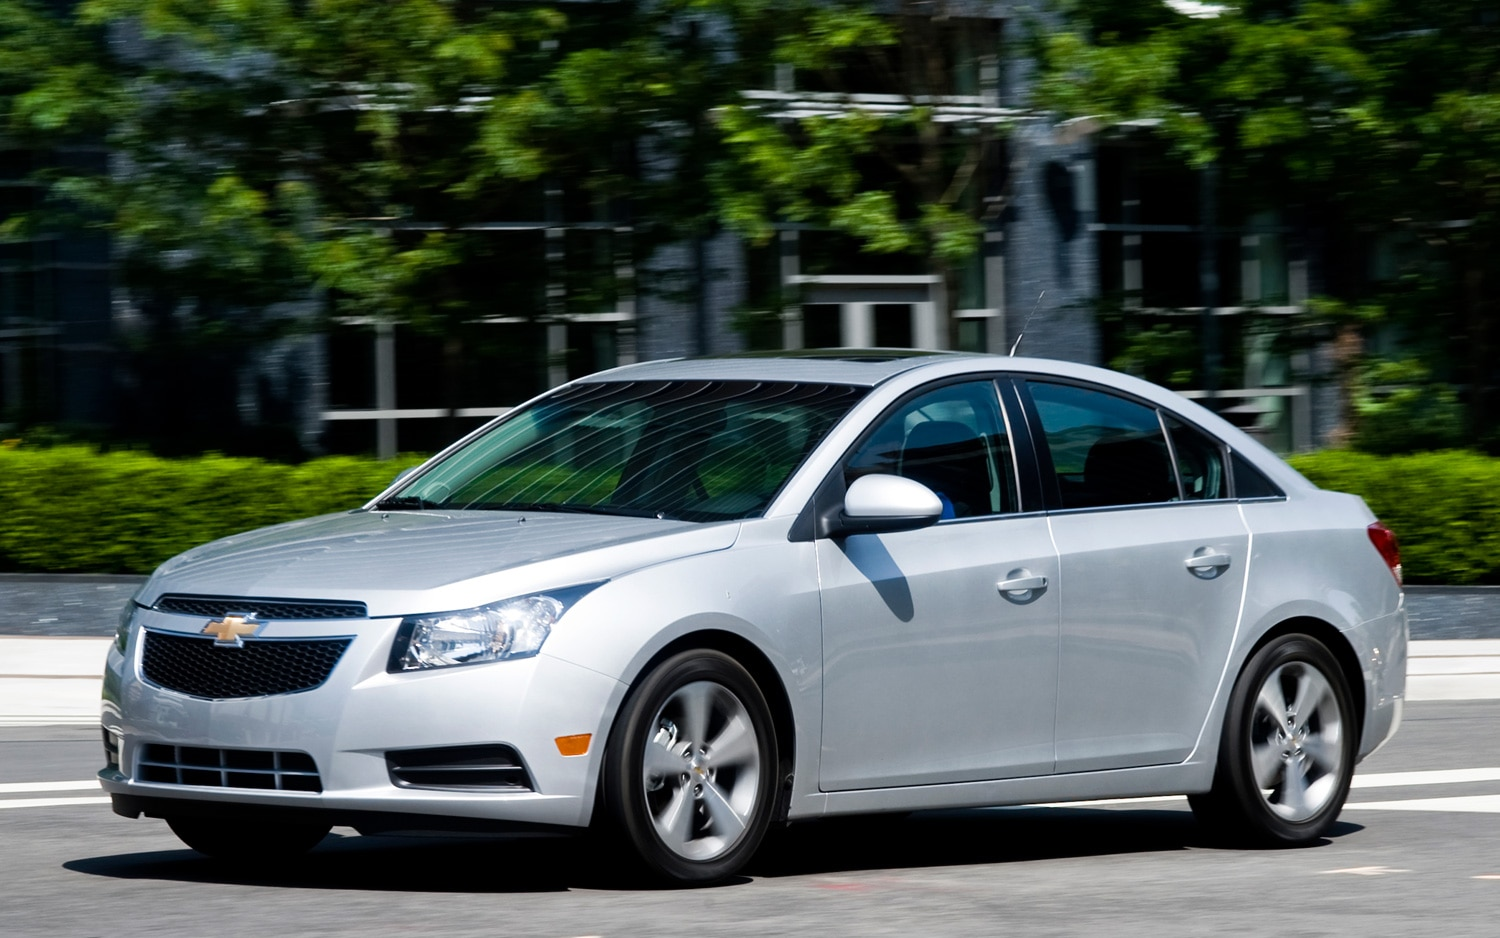 2012 Chevrolet Cruze LT Front Three Quarter1